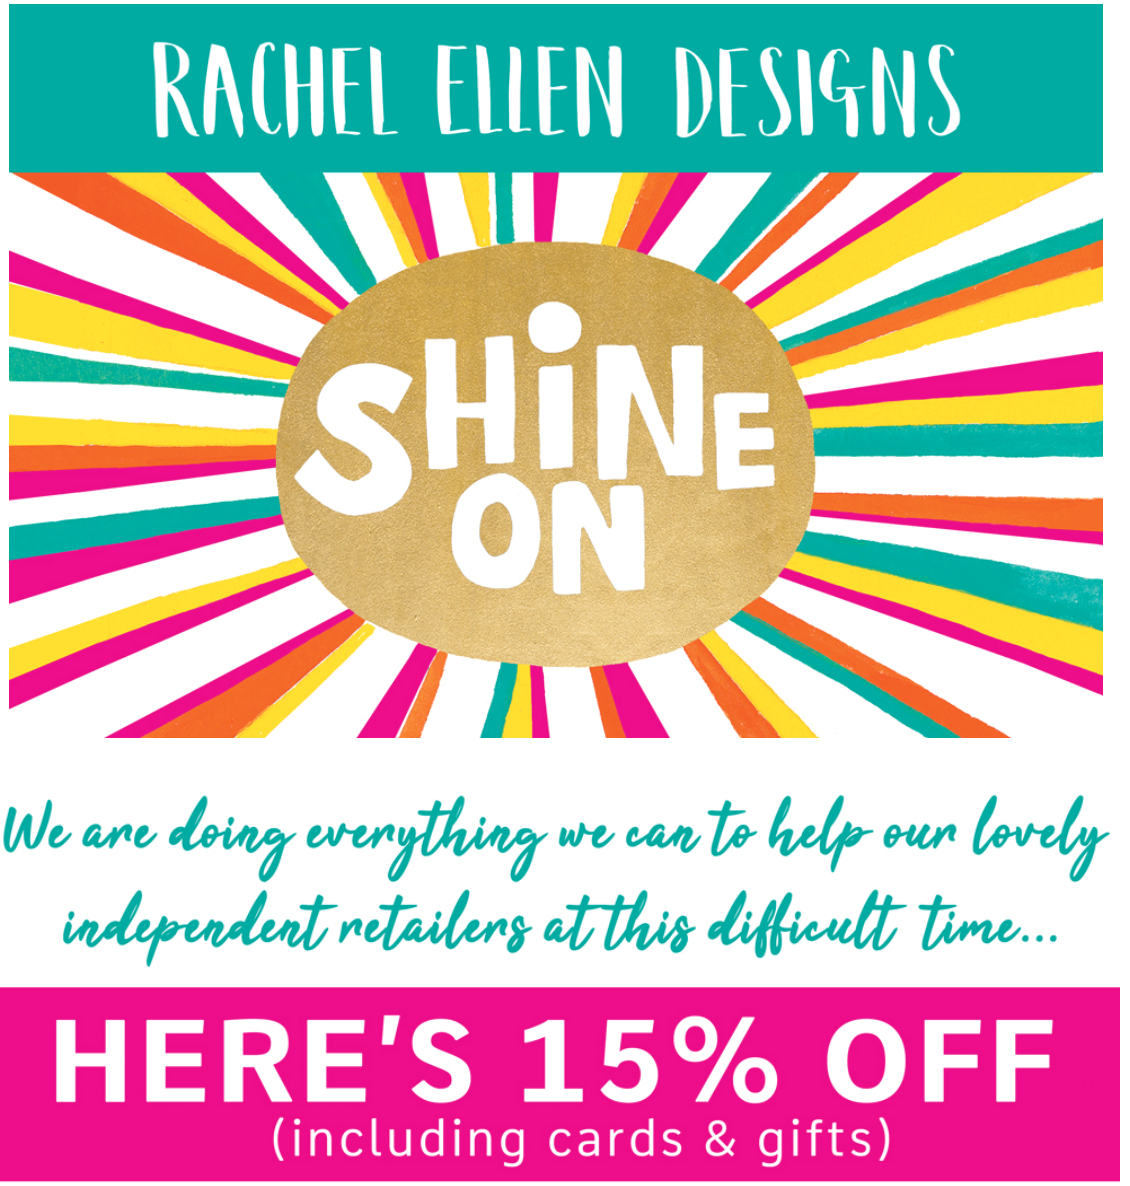 Above: Rachel Ellen Designs is among the publishers who are trying to help retailers by offering discounts and better trade terms.